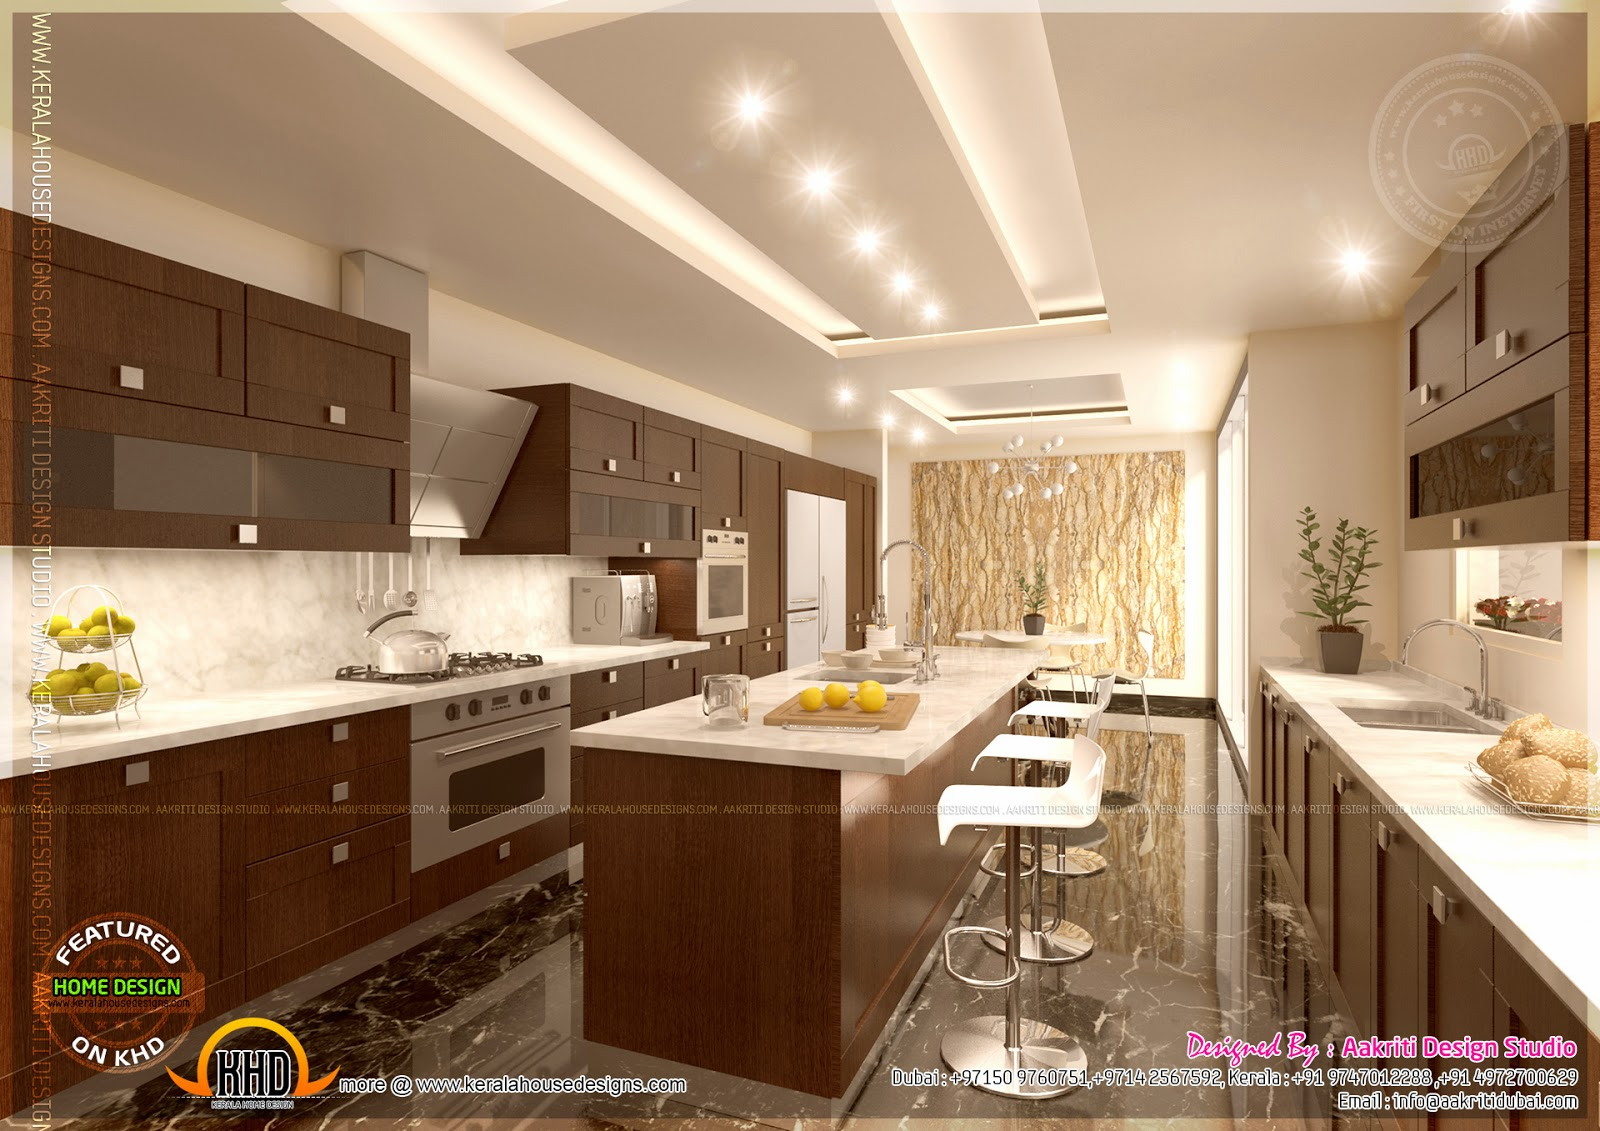 Kitchen designs by aakriti design studio kerala home for Home kitchen design